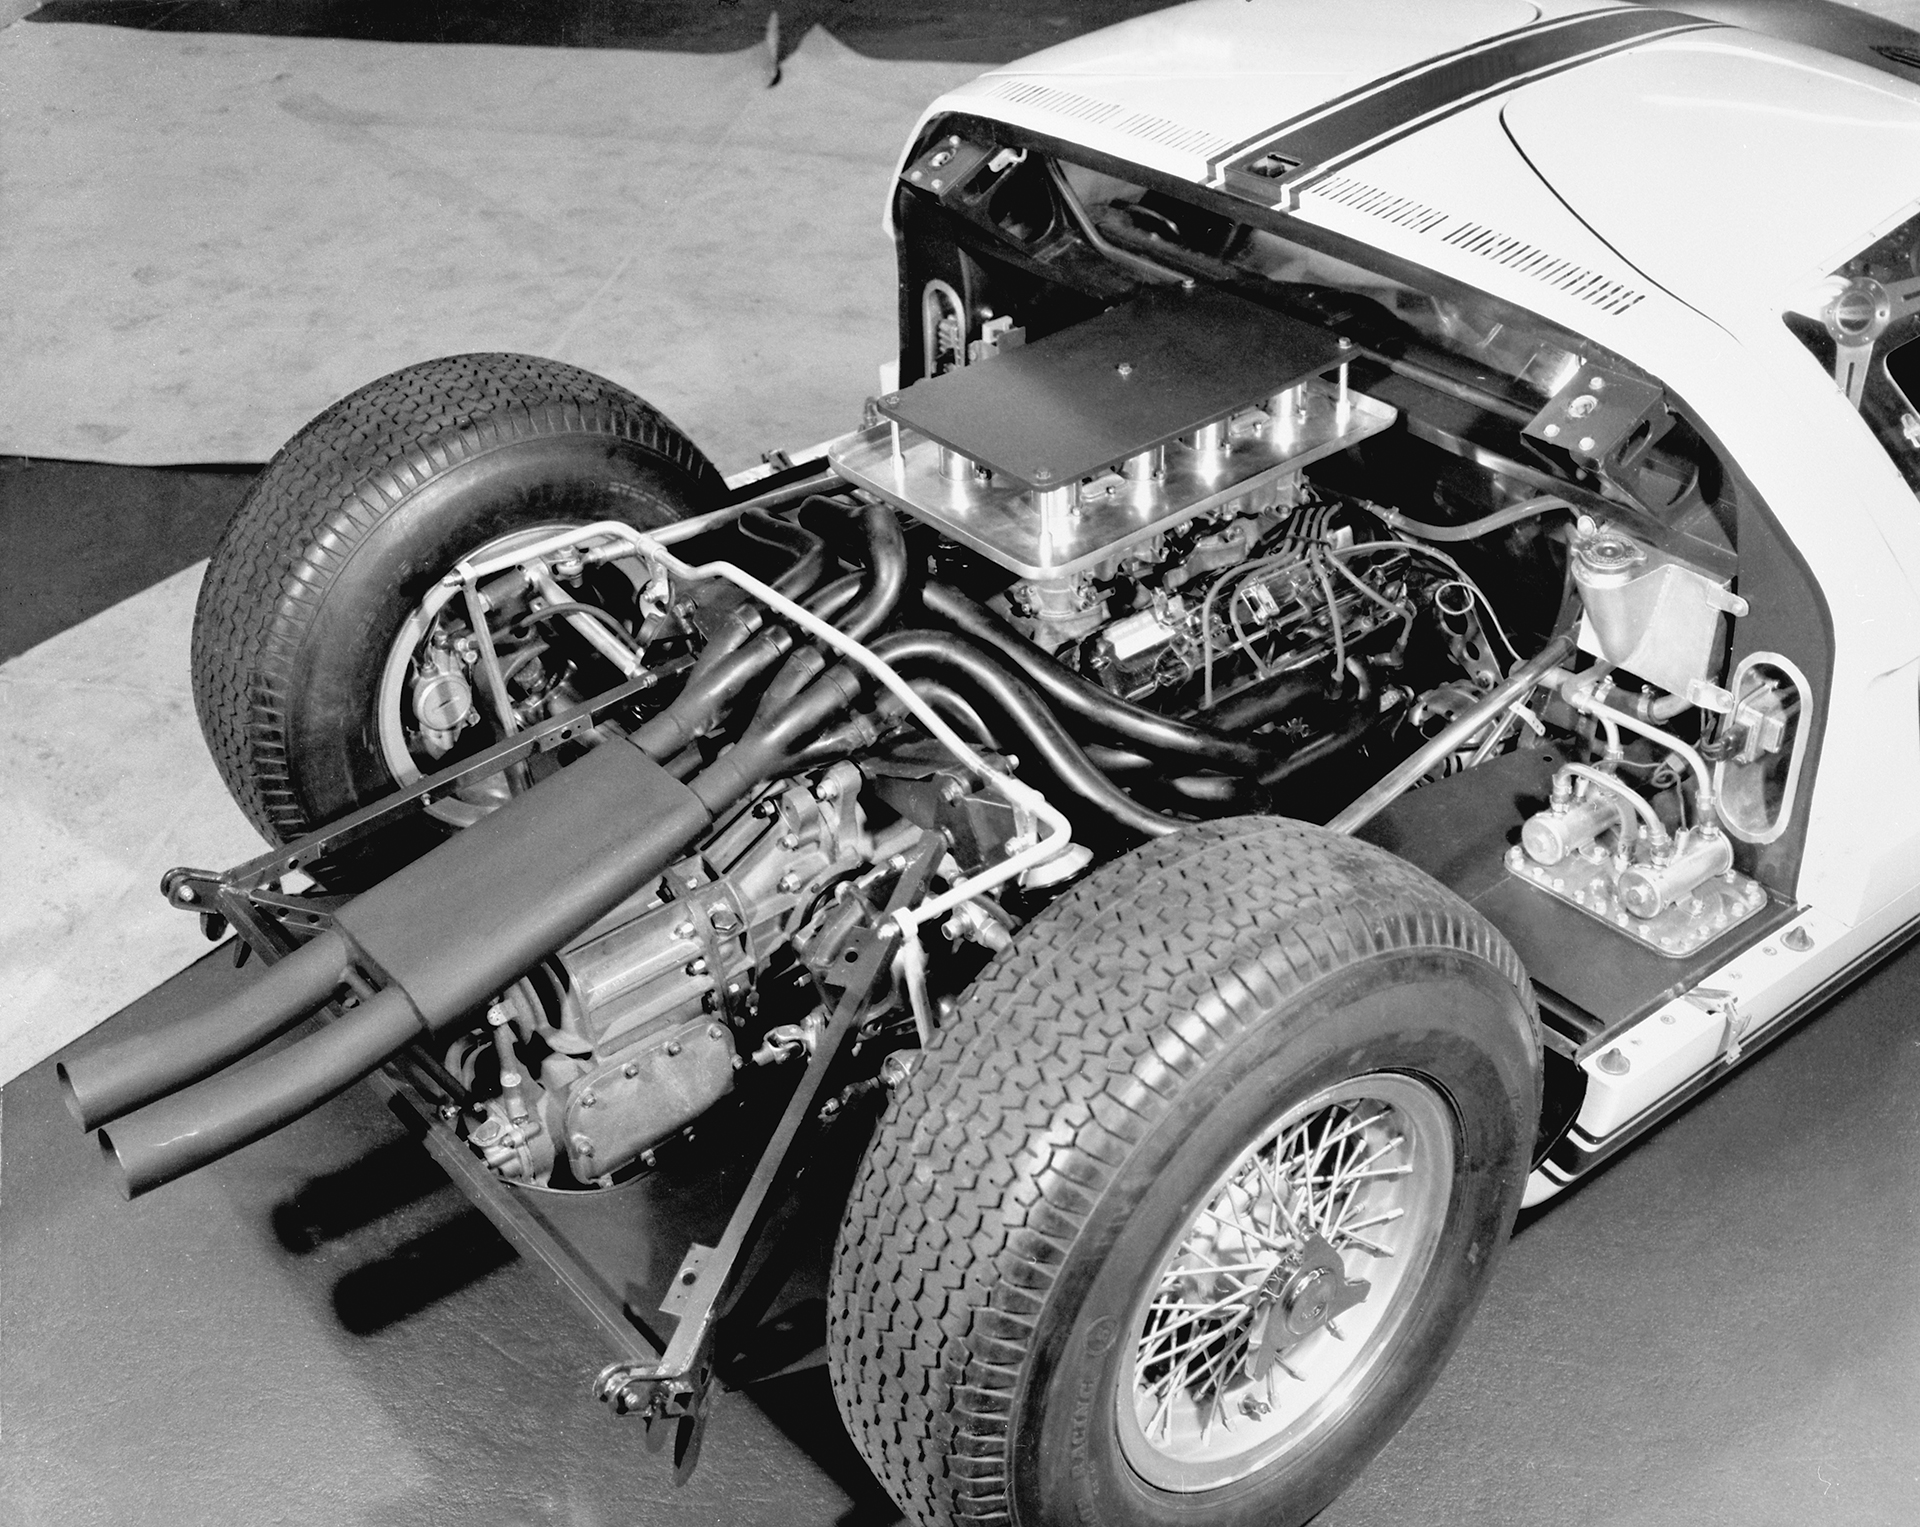 Ford GT - 1964 - rear engine